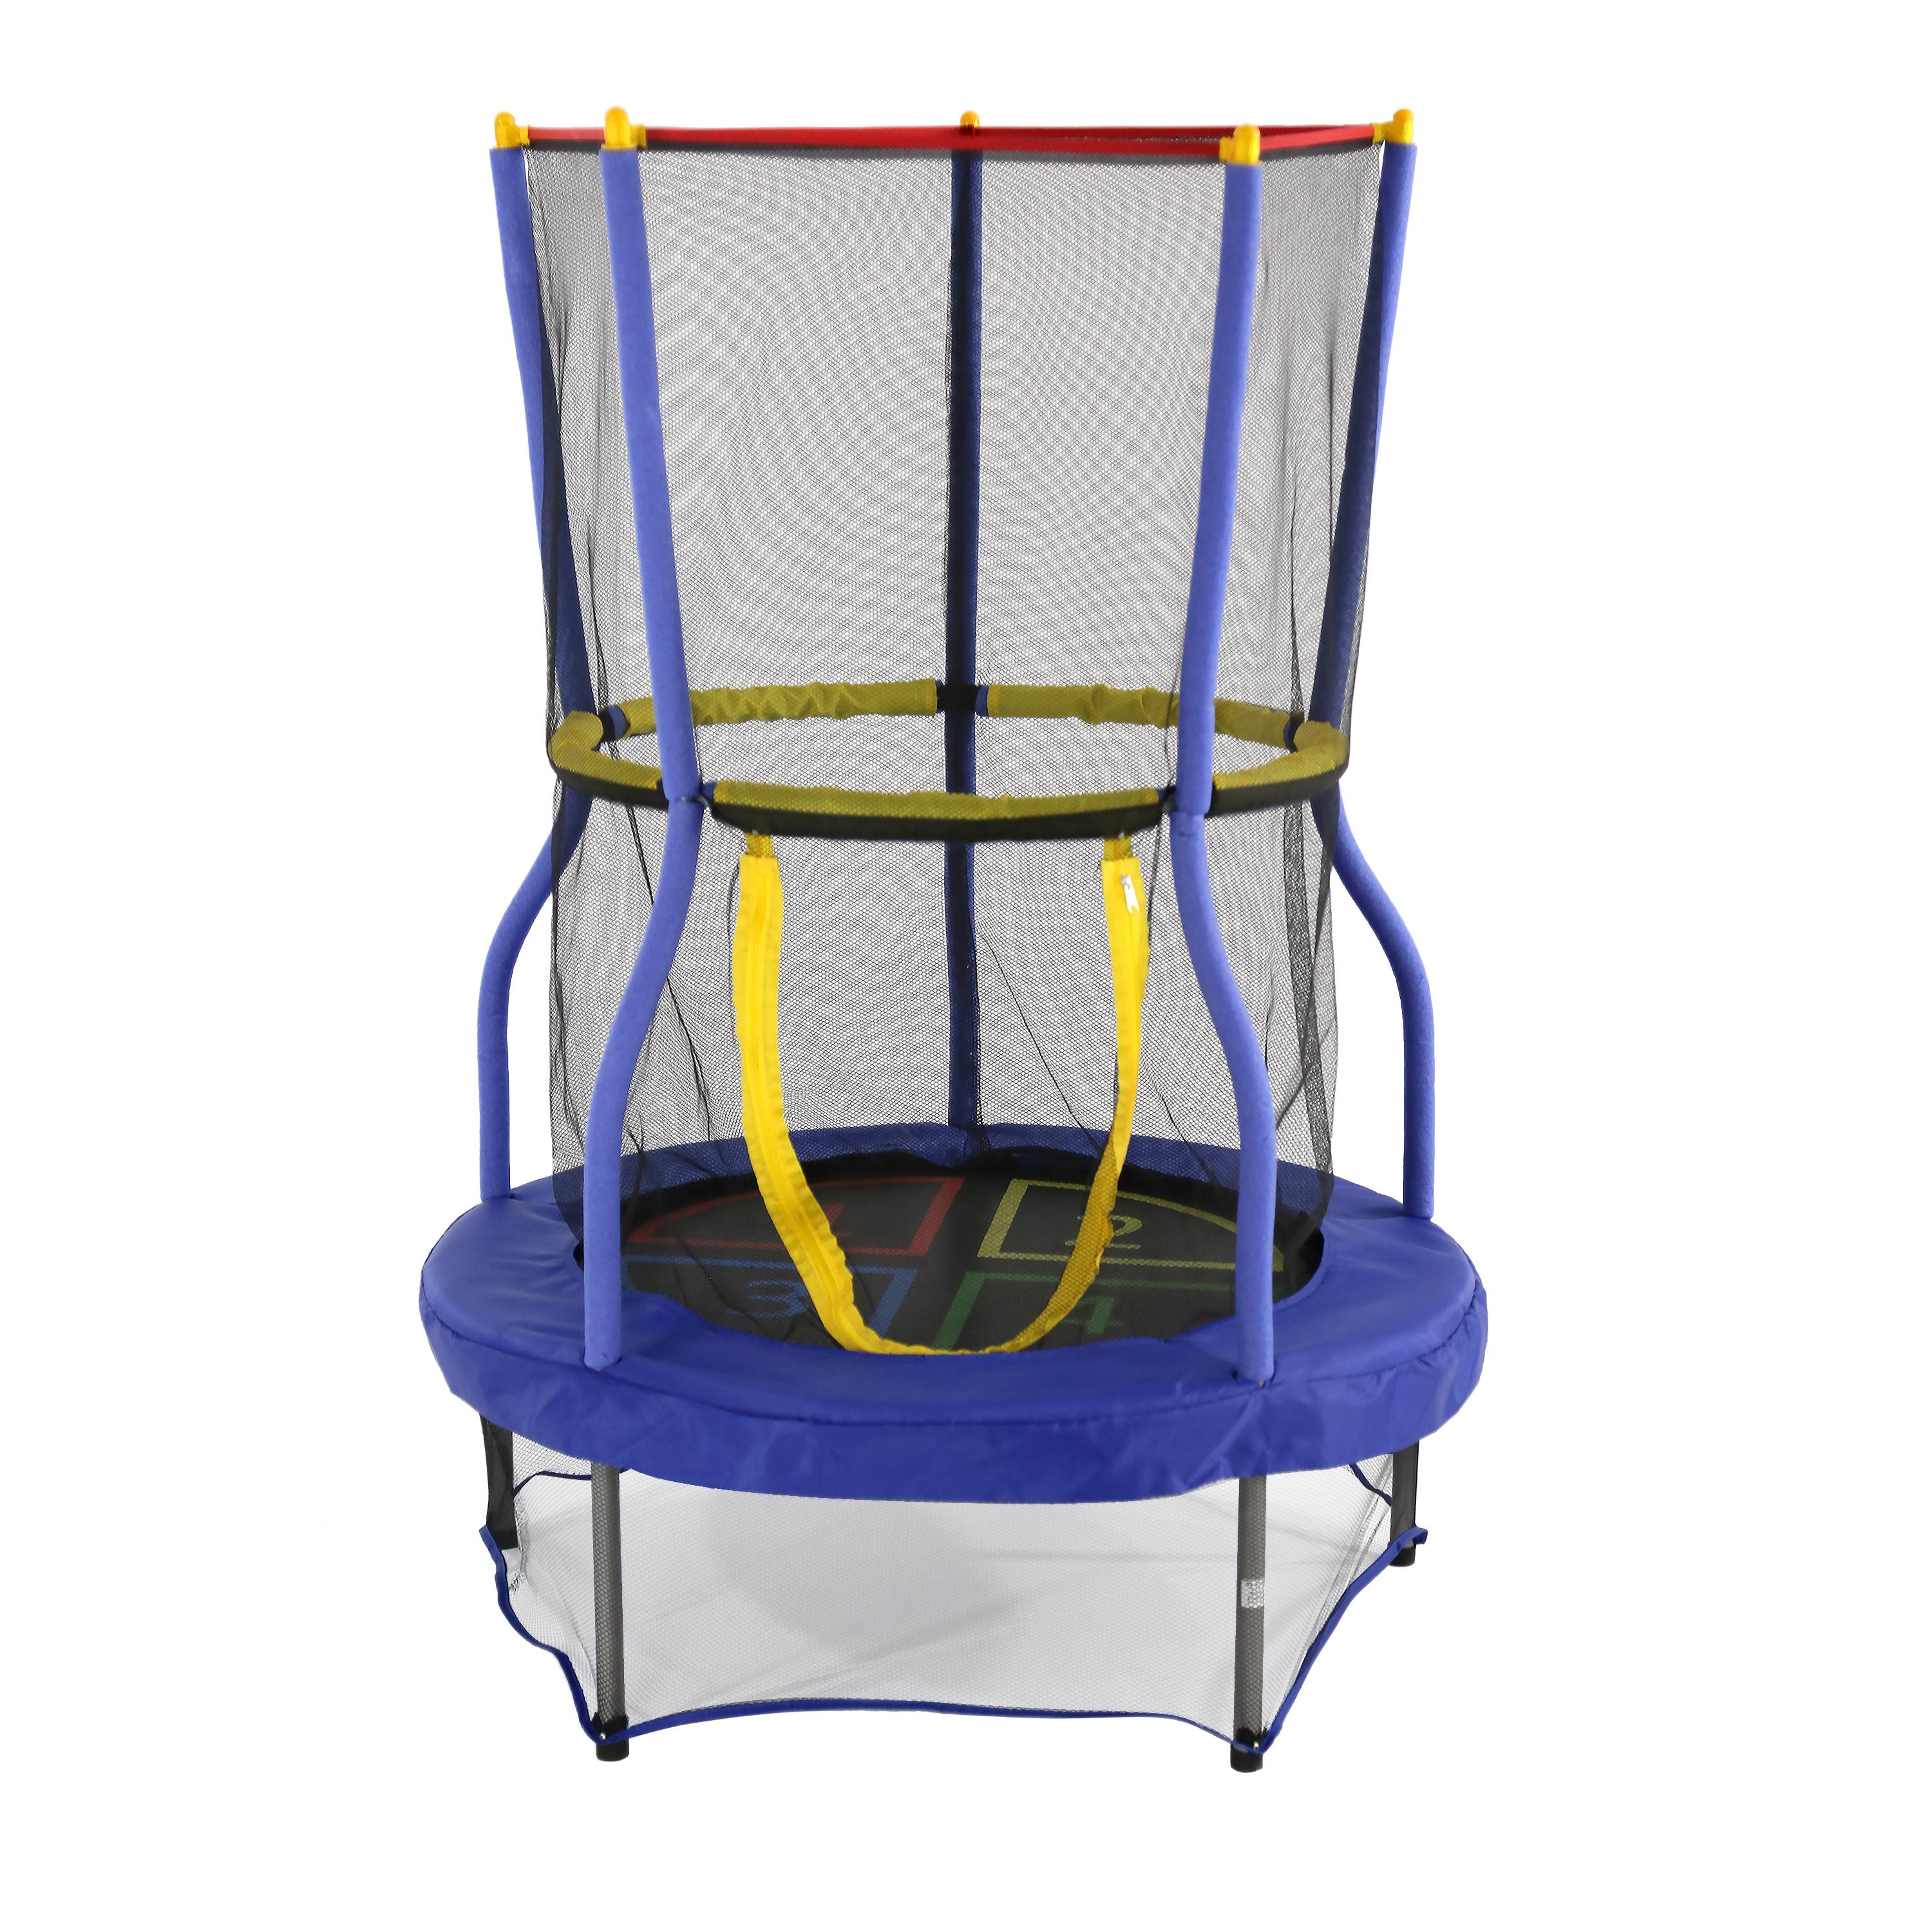 Skywalker Trampolines 40-Inch Bounce-N-Learn Trampoline, with Enclosure, Blue